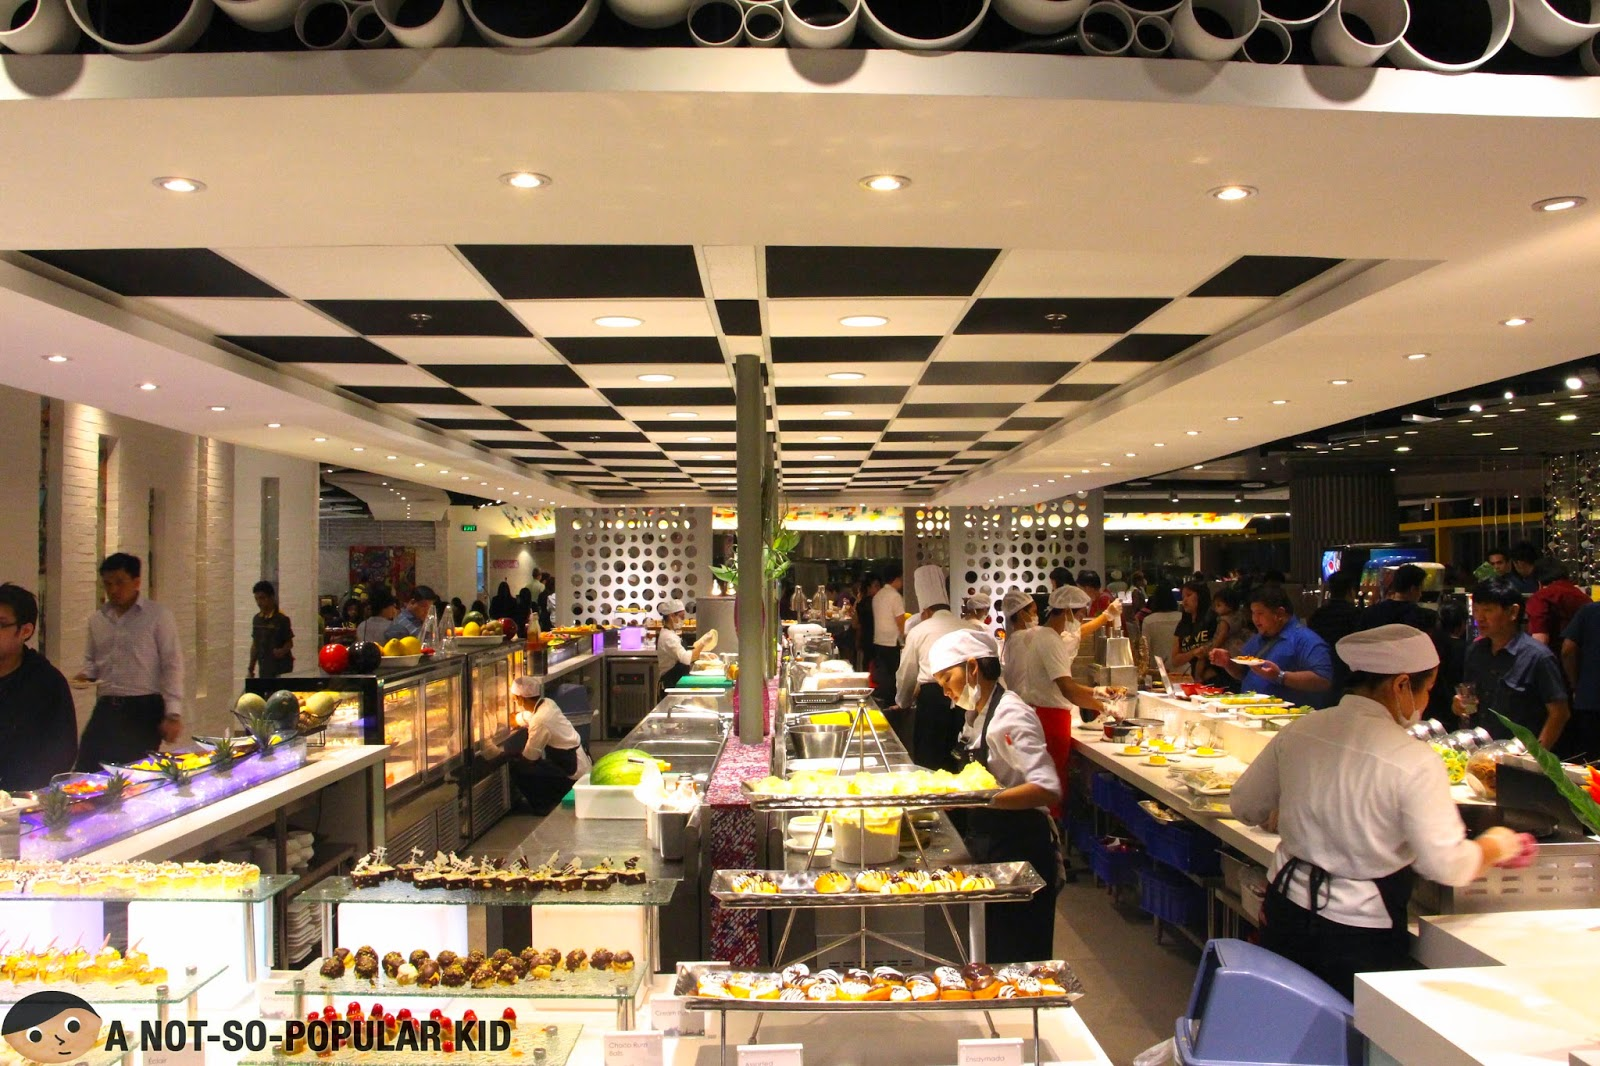 sm megamall Things to do near sm megamall on tripadvisor: see 4,001 reviews and 8,435 candid photos of things to do near sm megamall in mandaluyong, philippines.